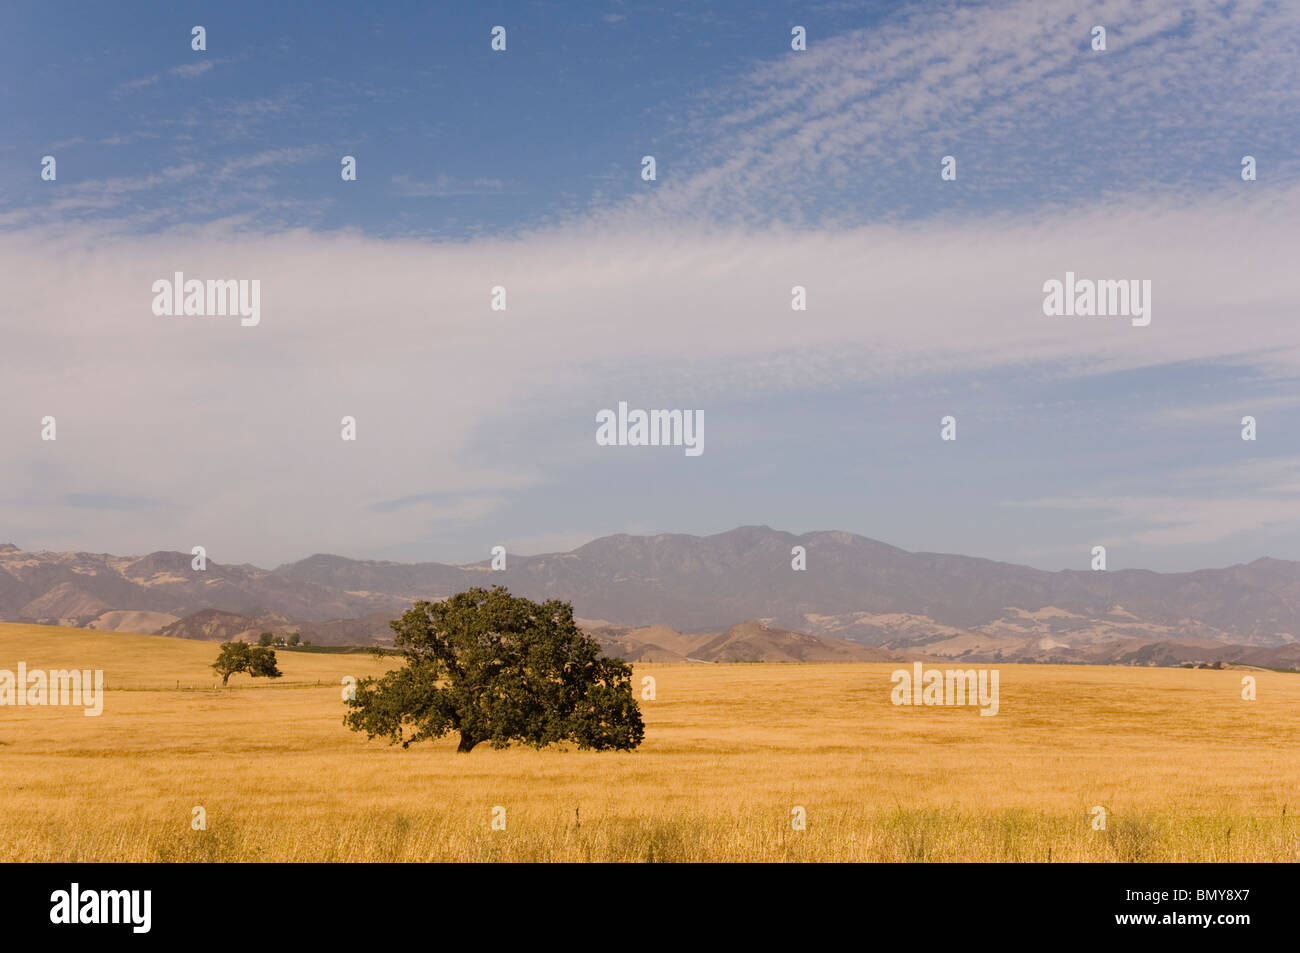 Lonely Tree Illustration - Stock Image